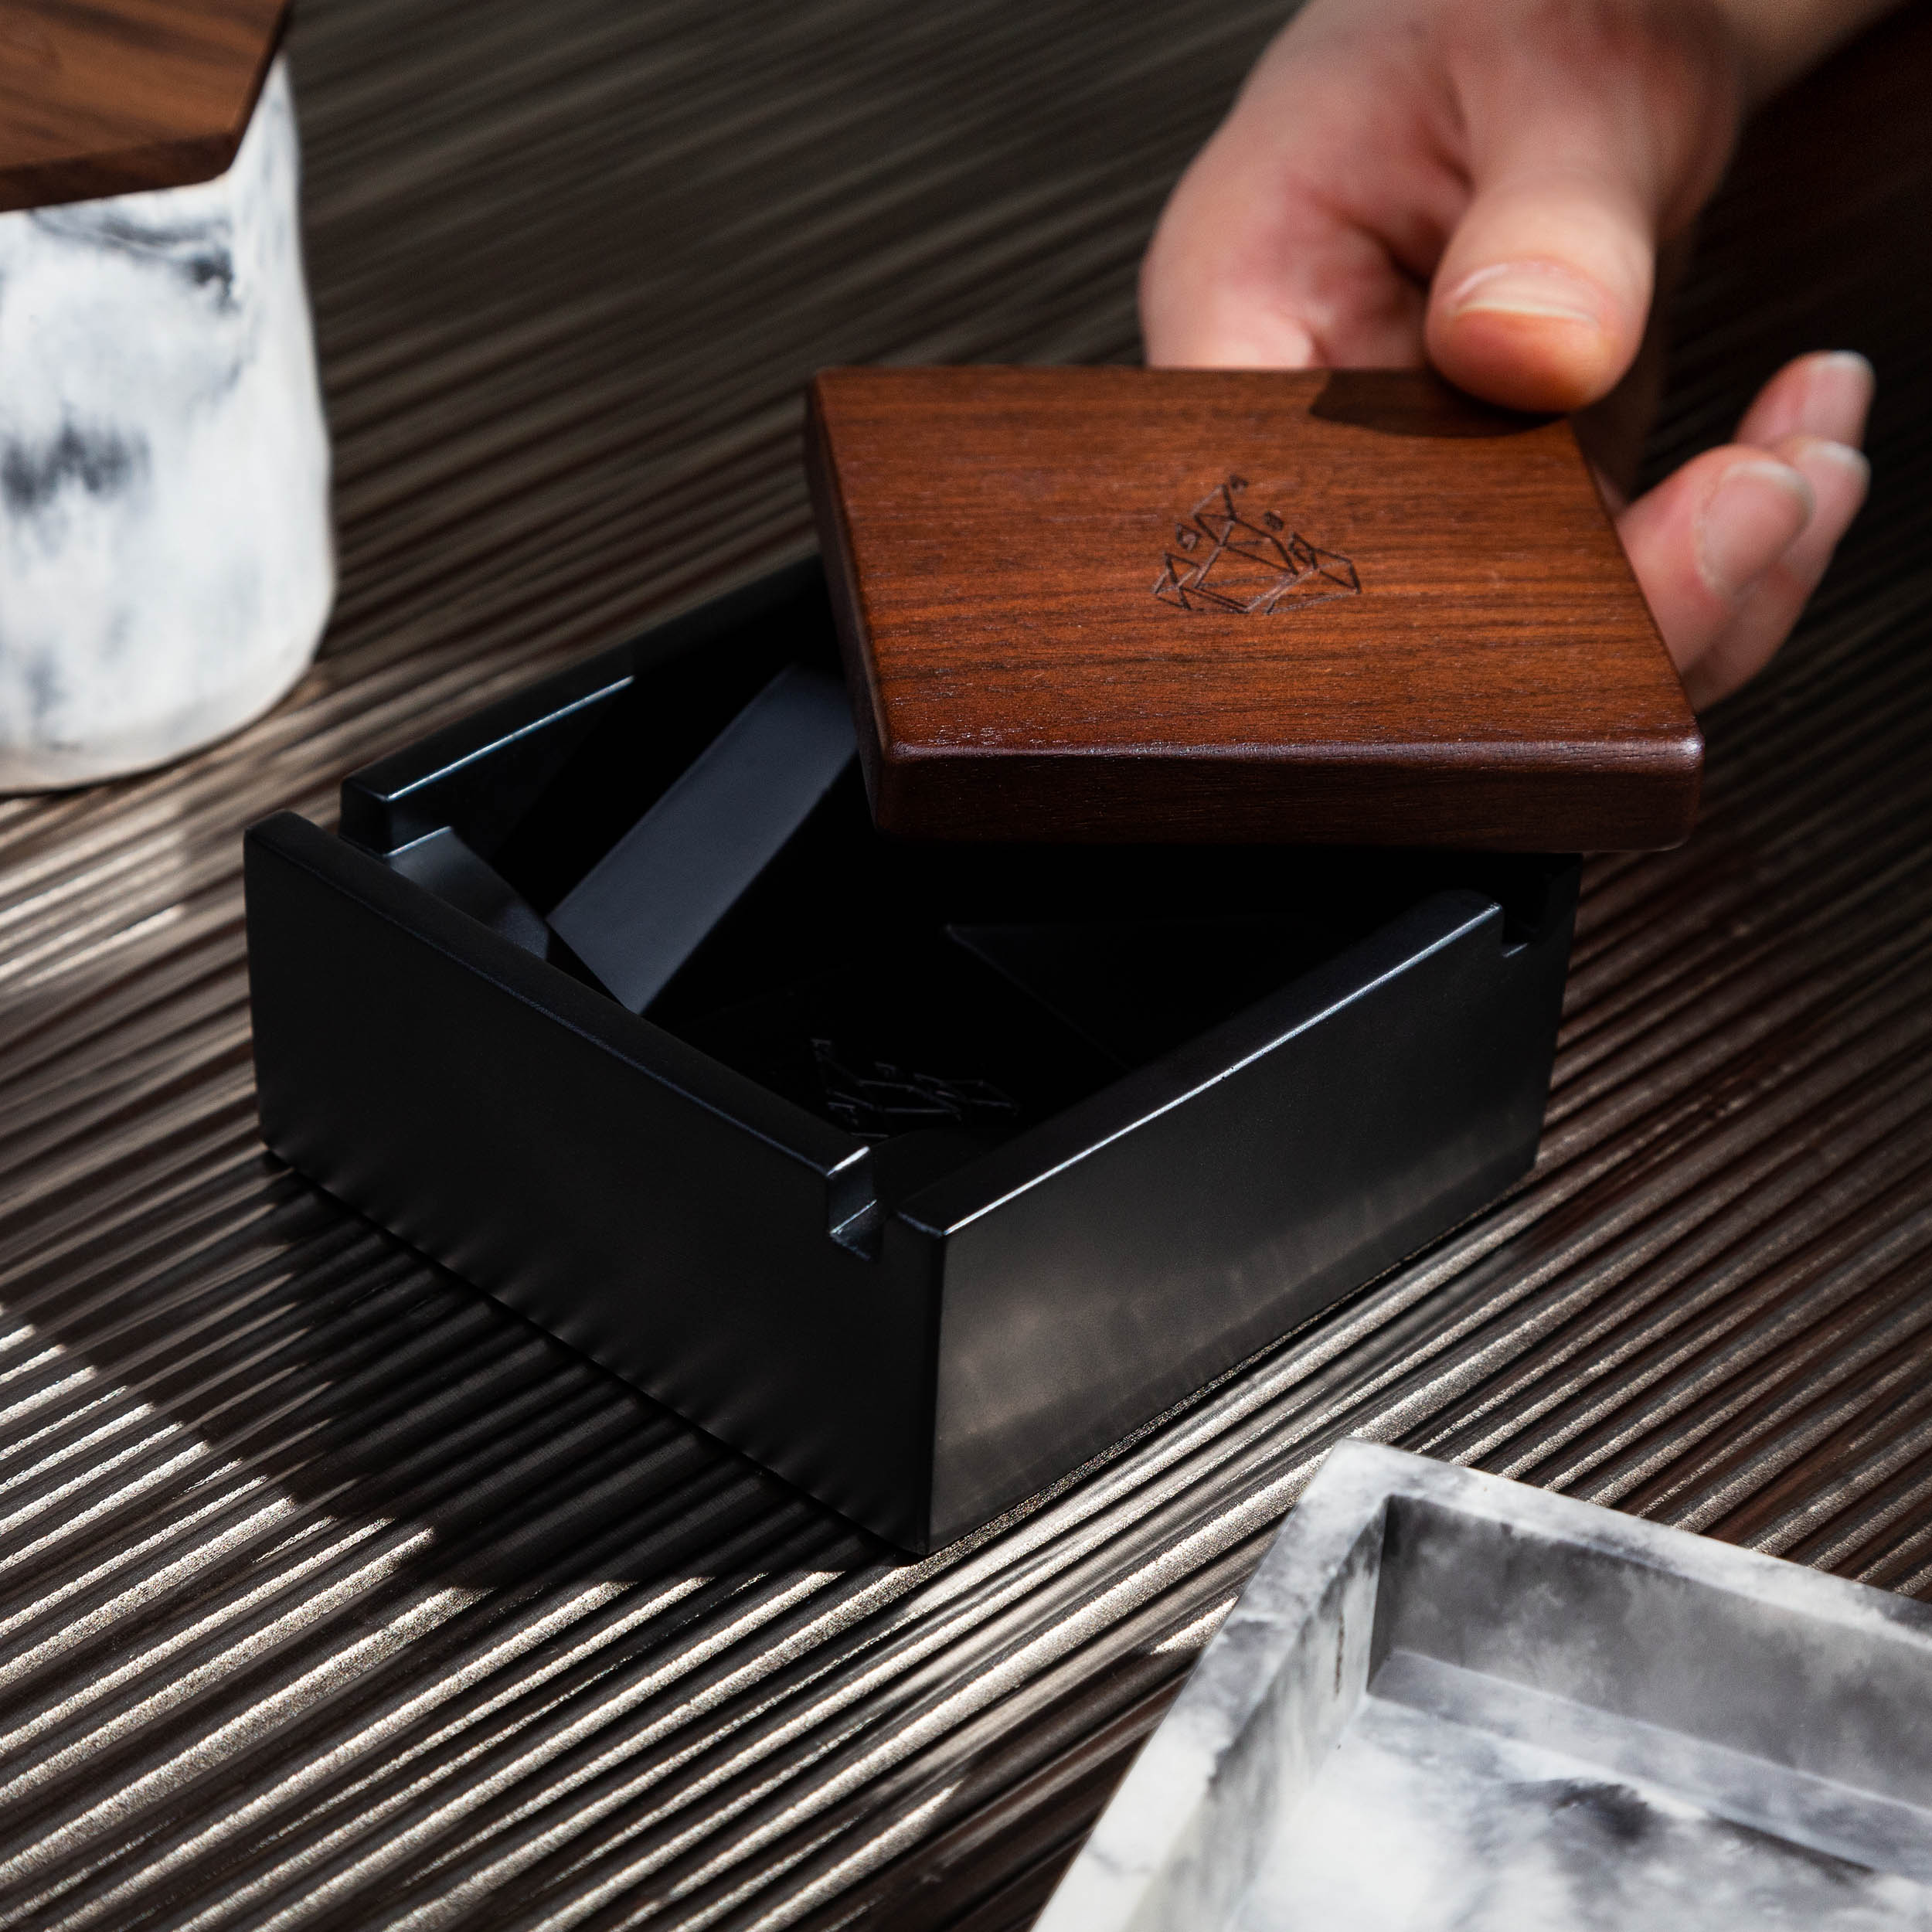 Professional Product Photography of Briq Cannabis Ashtray by BRNT